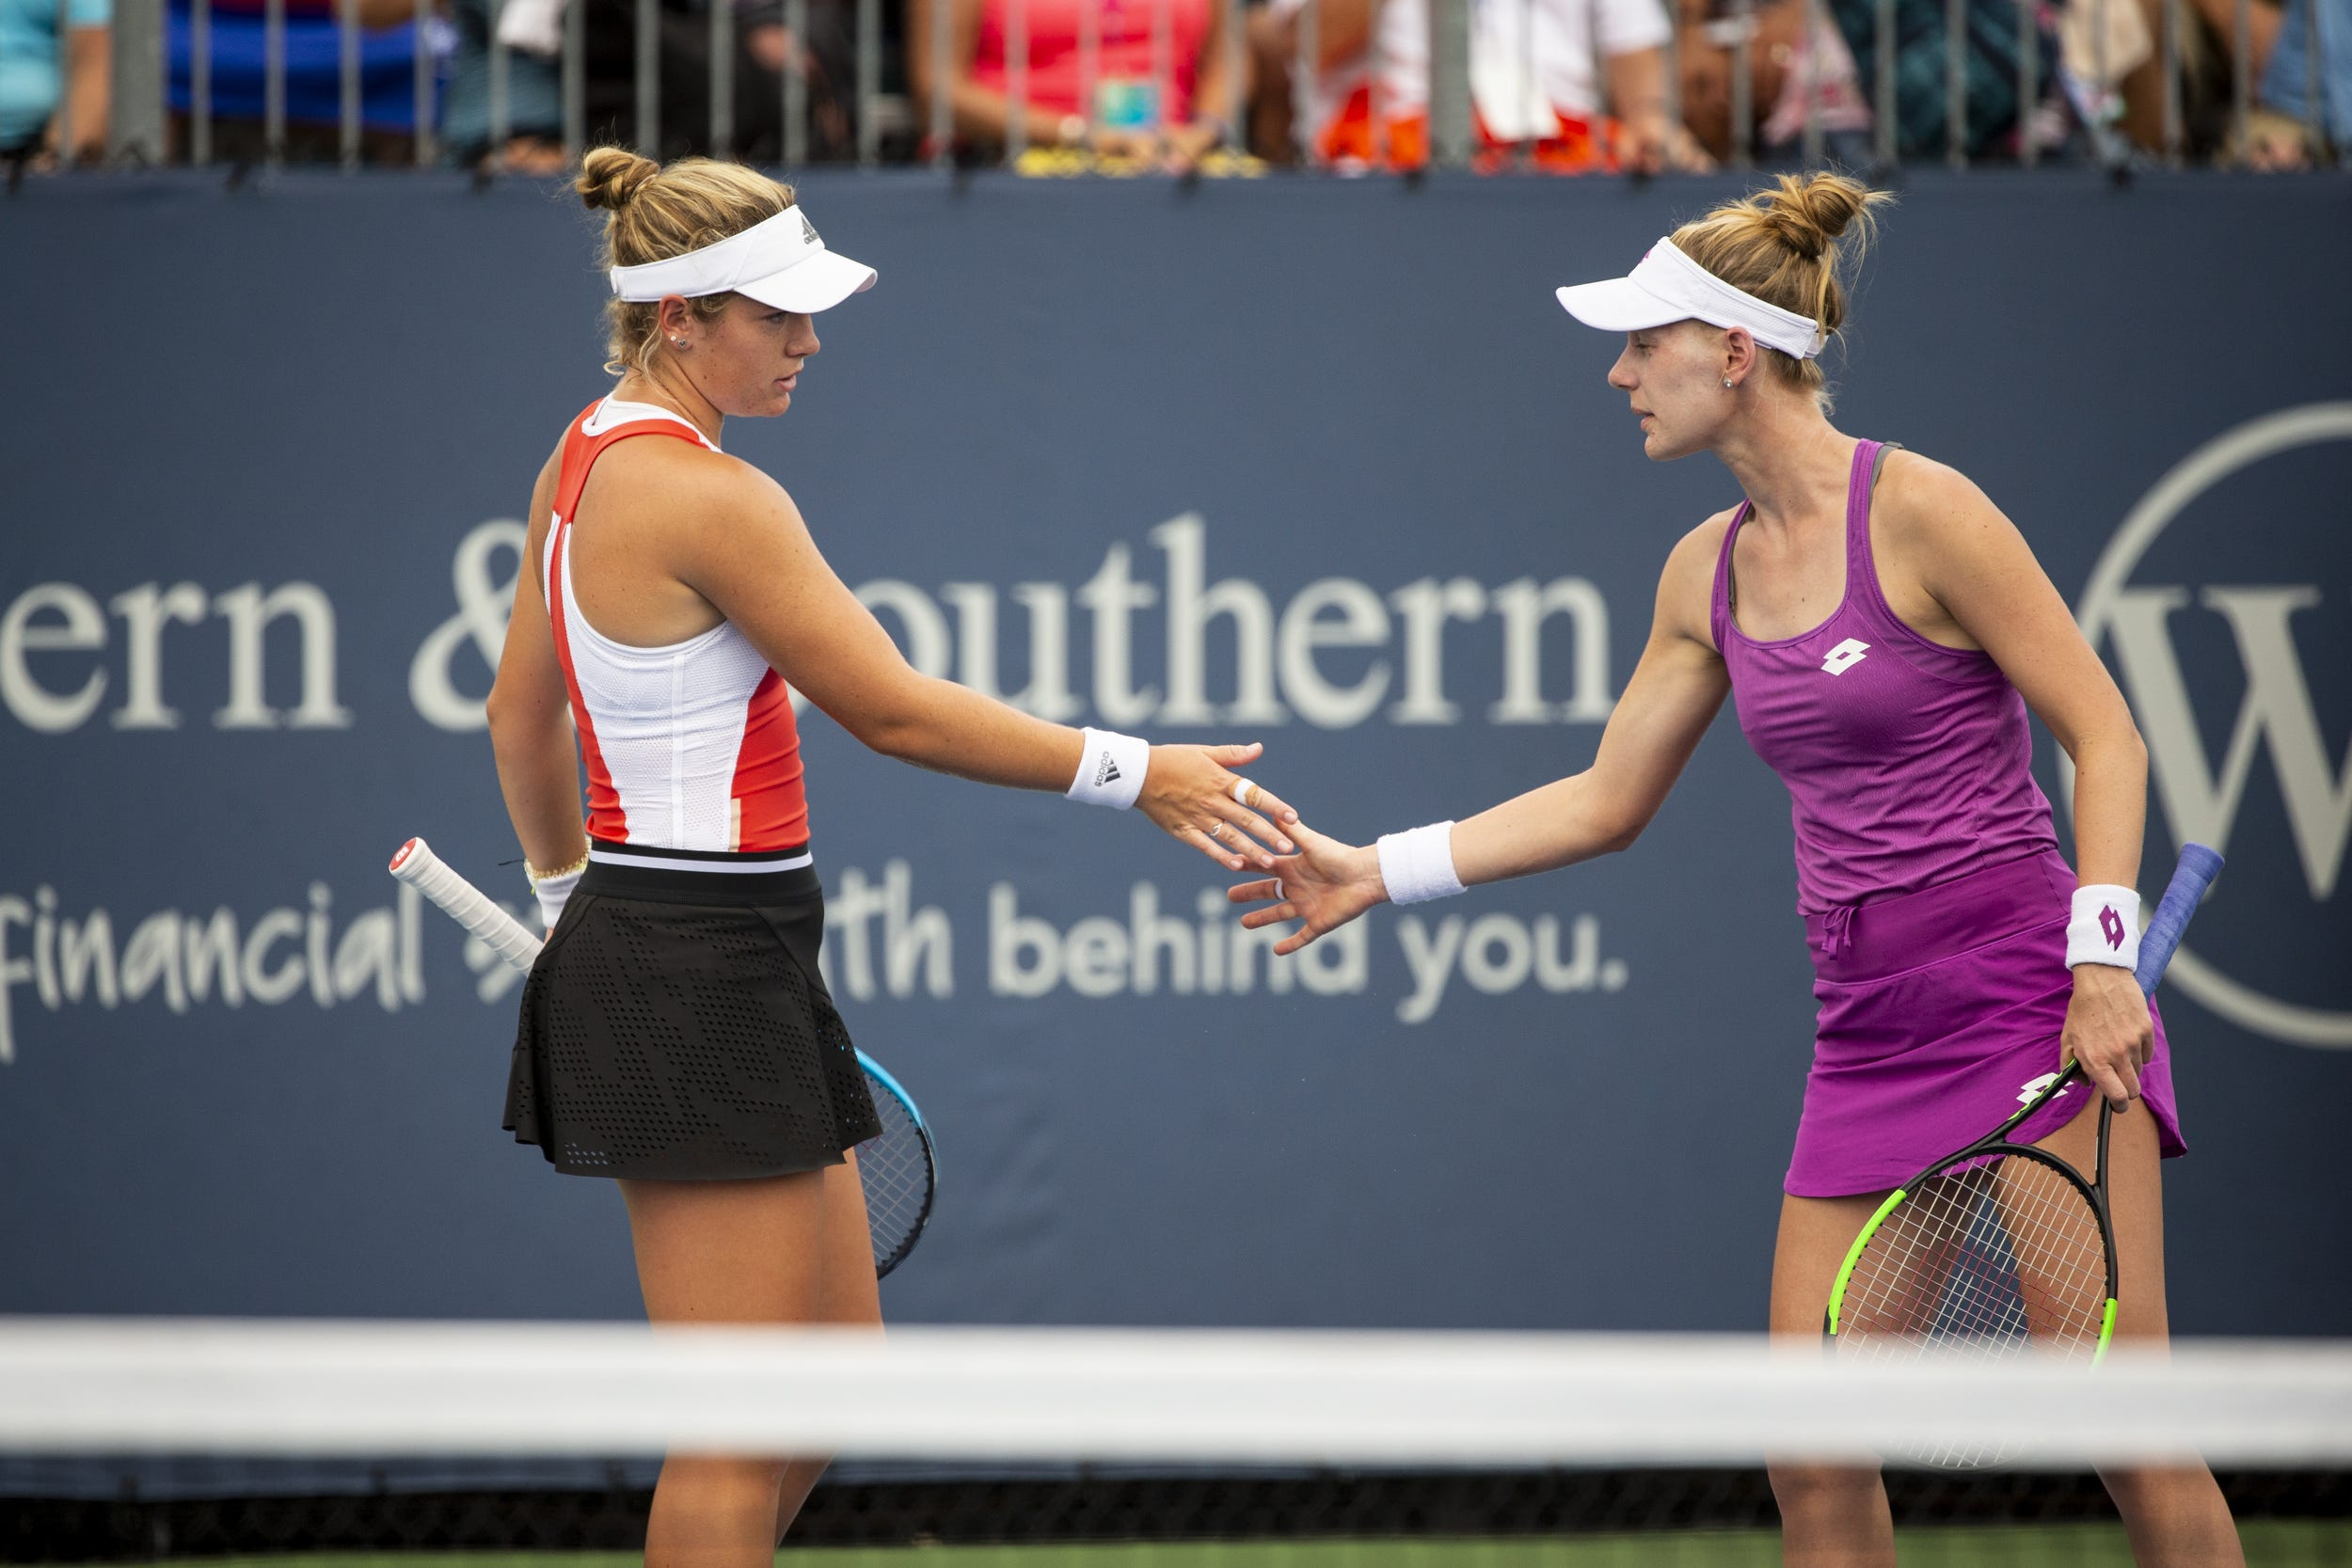 McNally, Riske all smiles after thrilling doubles win at W&S Open